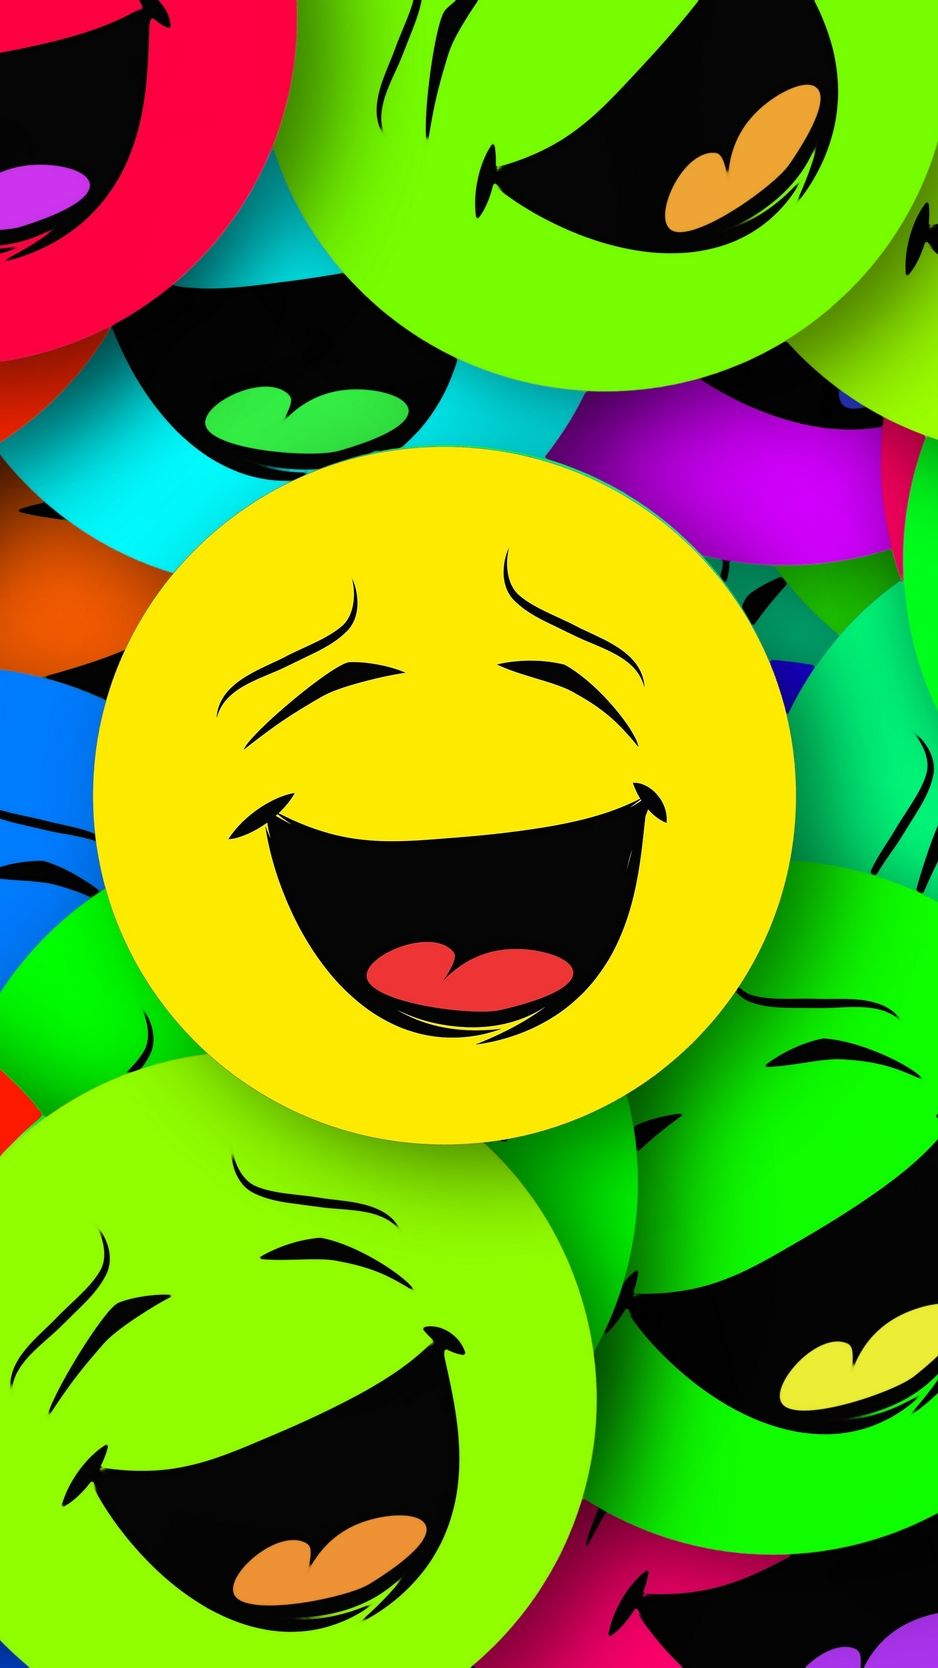 Smilies, smiles, colorful, emotion wallpaper, background